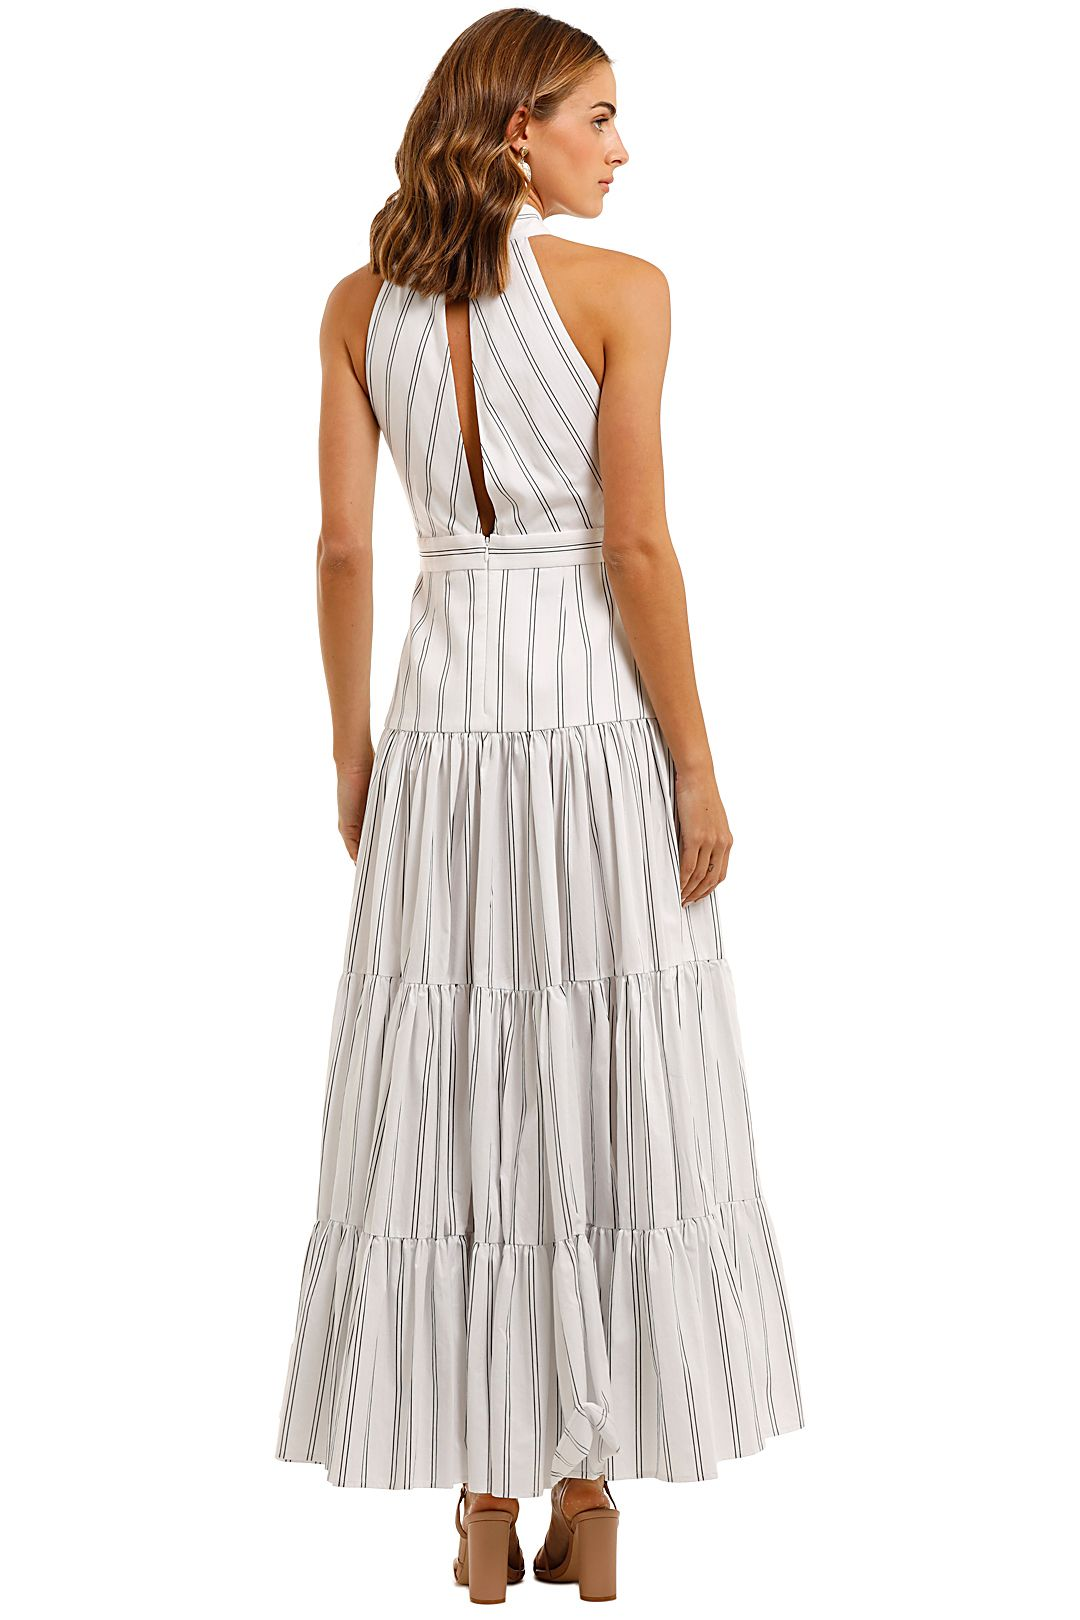 Acler Eleanor Dress Stripes